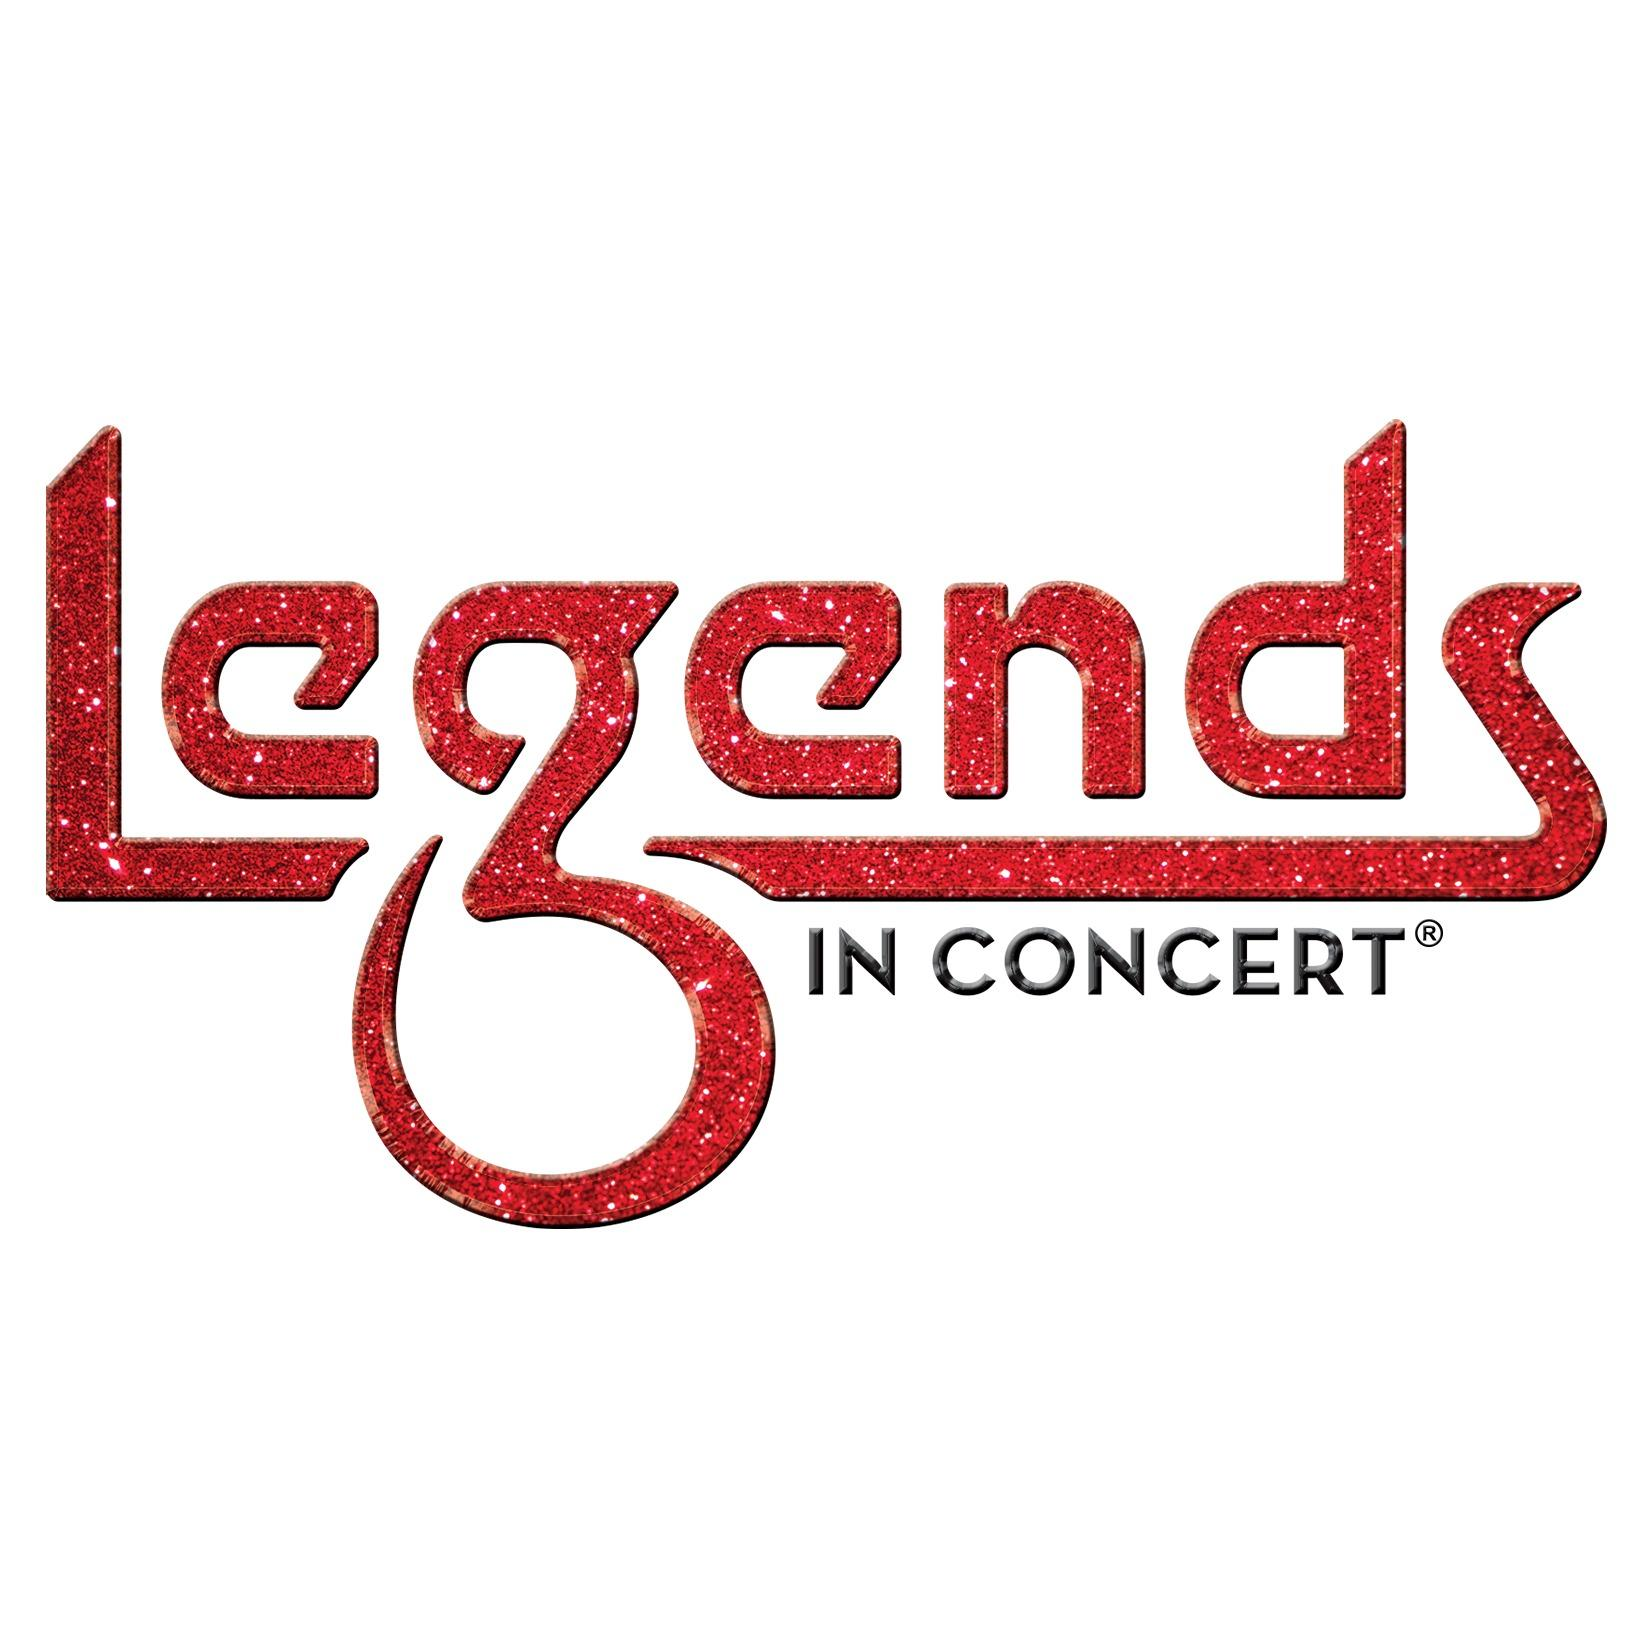 Legends in Concert at OWA